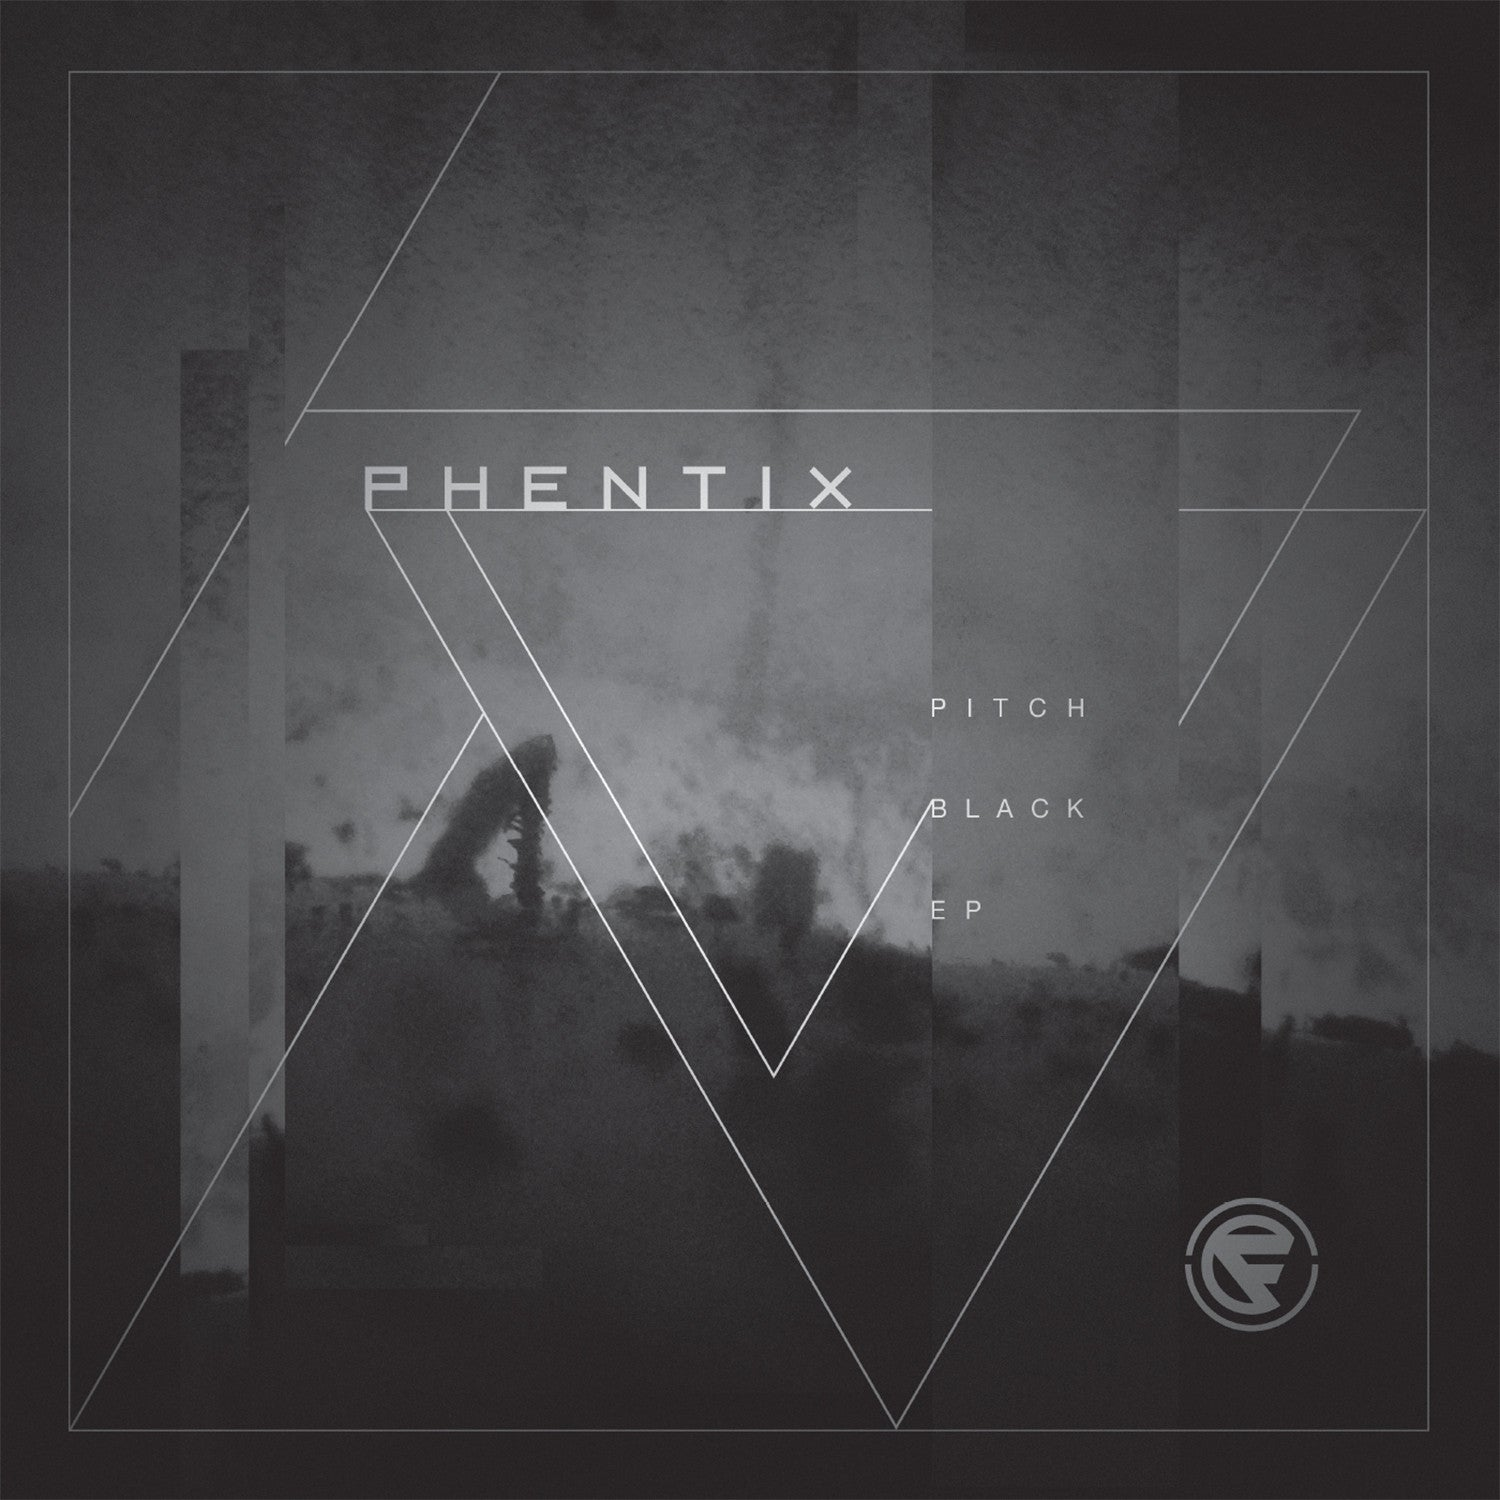 Phentix - Pitch Black EP , Vinyl - Cyberfunk, Unearthed Sounds